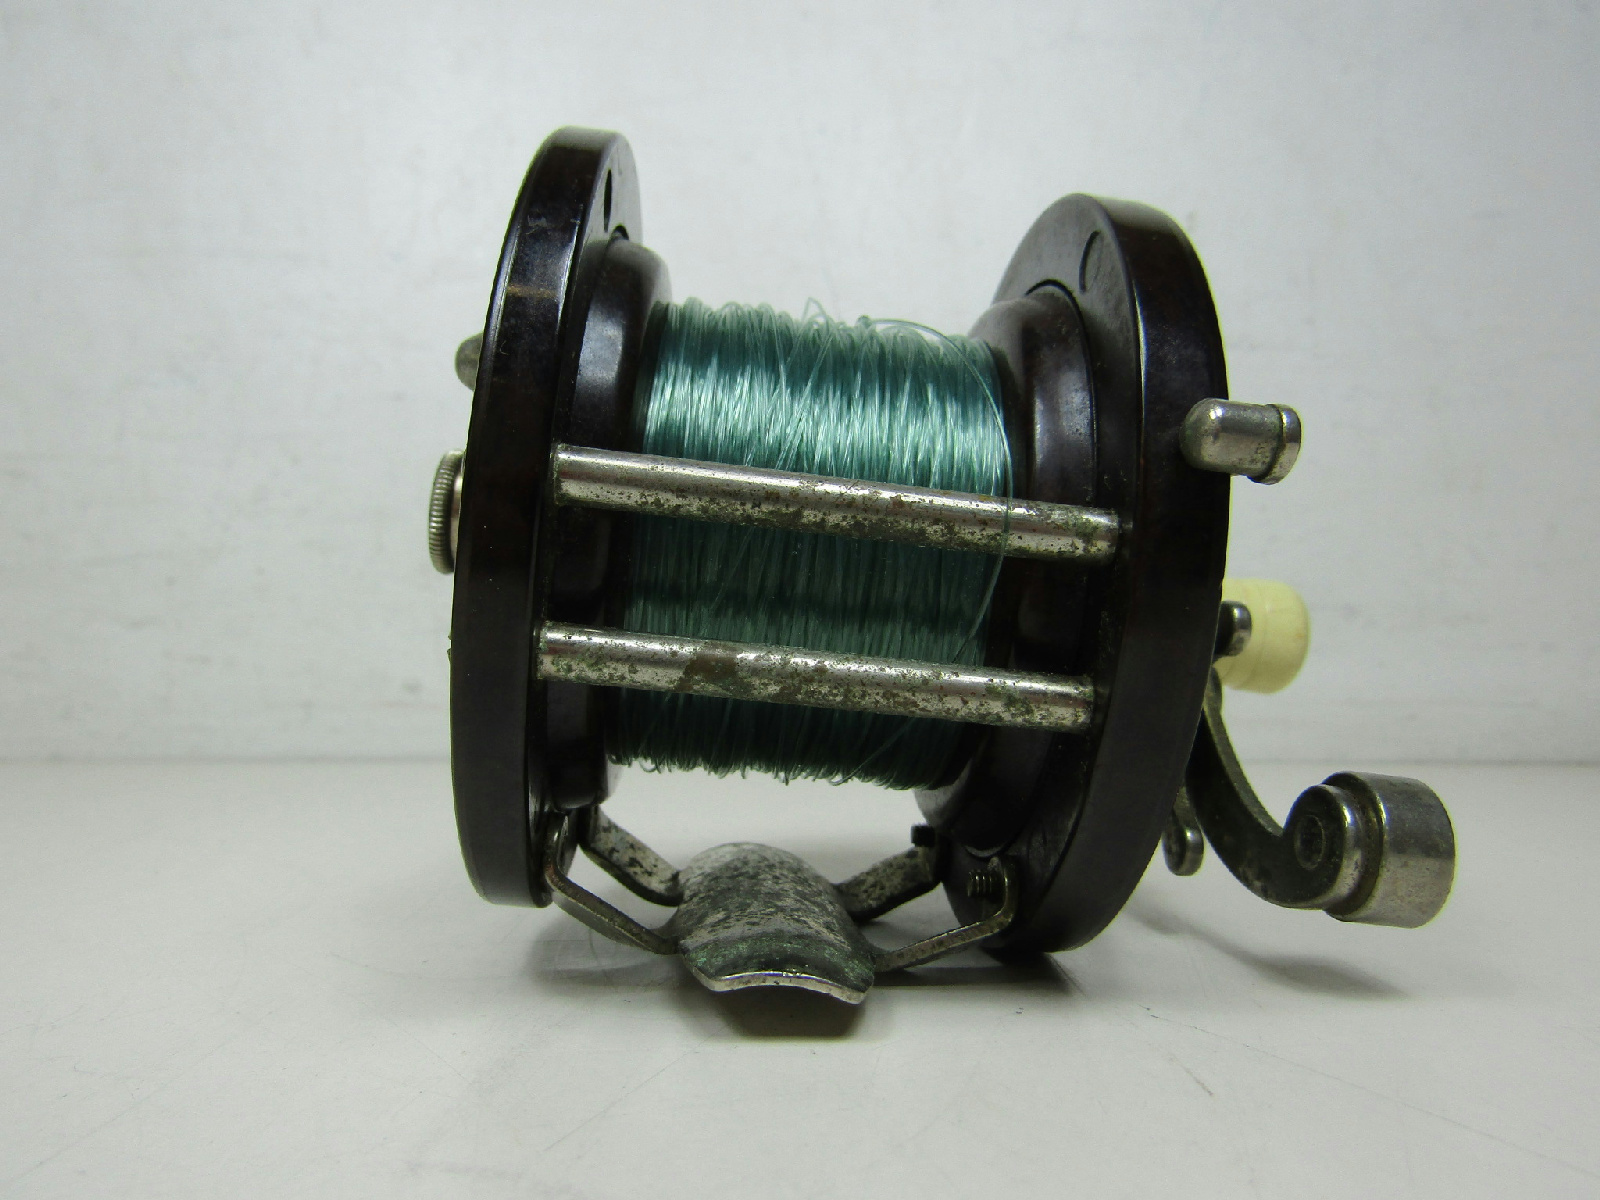 Penn no 85 fishing reel with line cabela 39 s bag ebay for Cabela s fishing reels